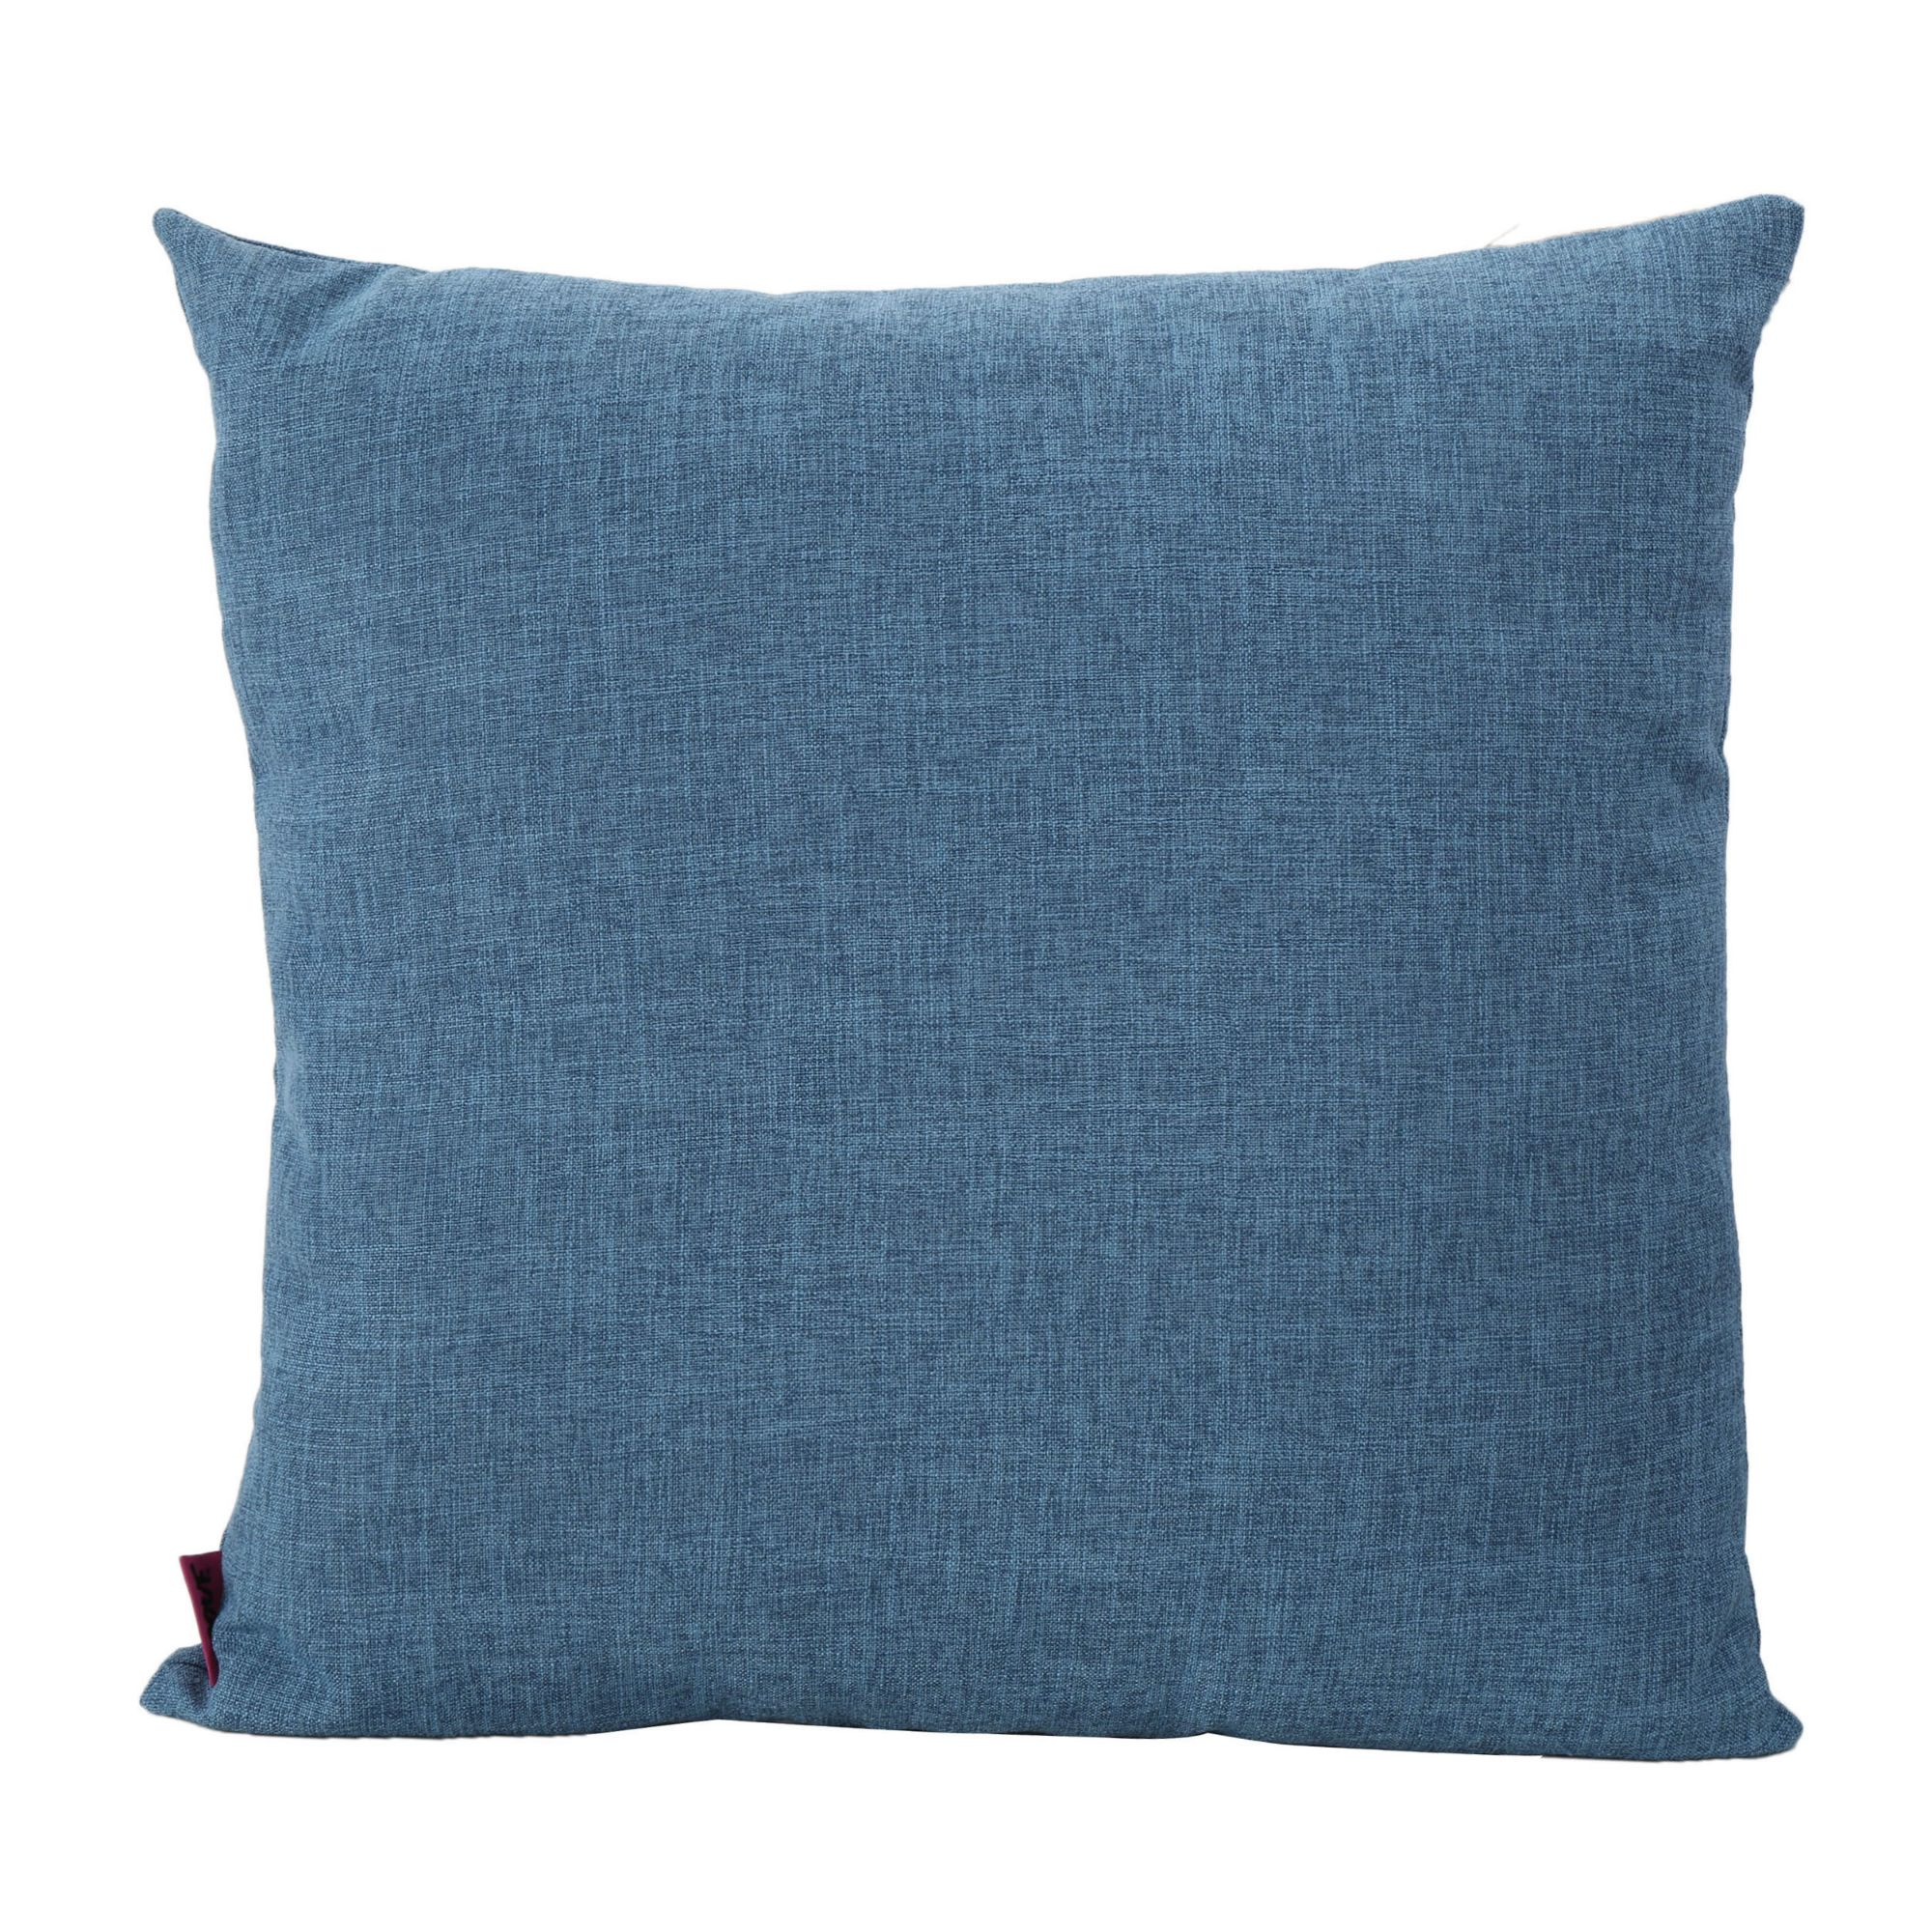 22 Muted Blue Contemporary Square Throw Pillow Walmart Com Walmart Com